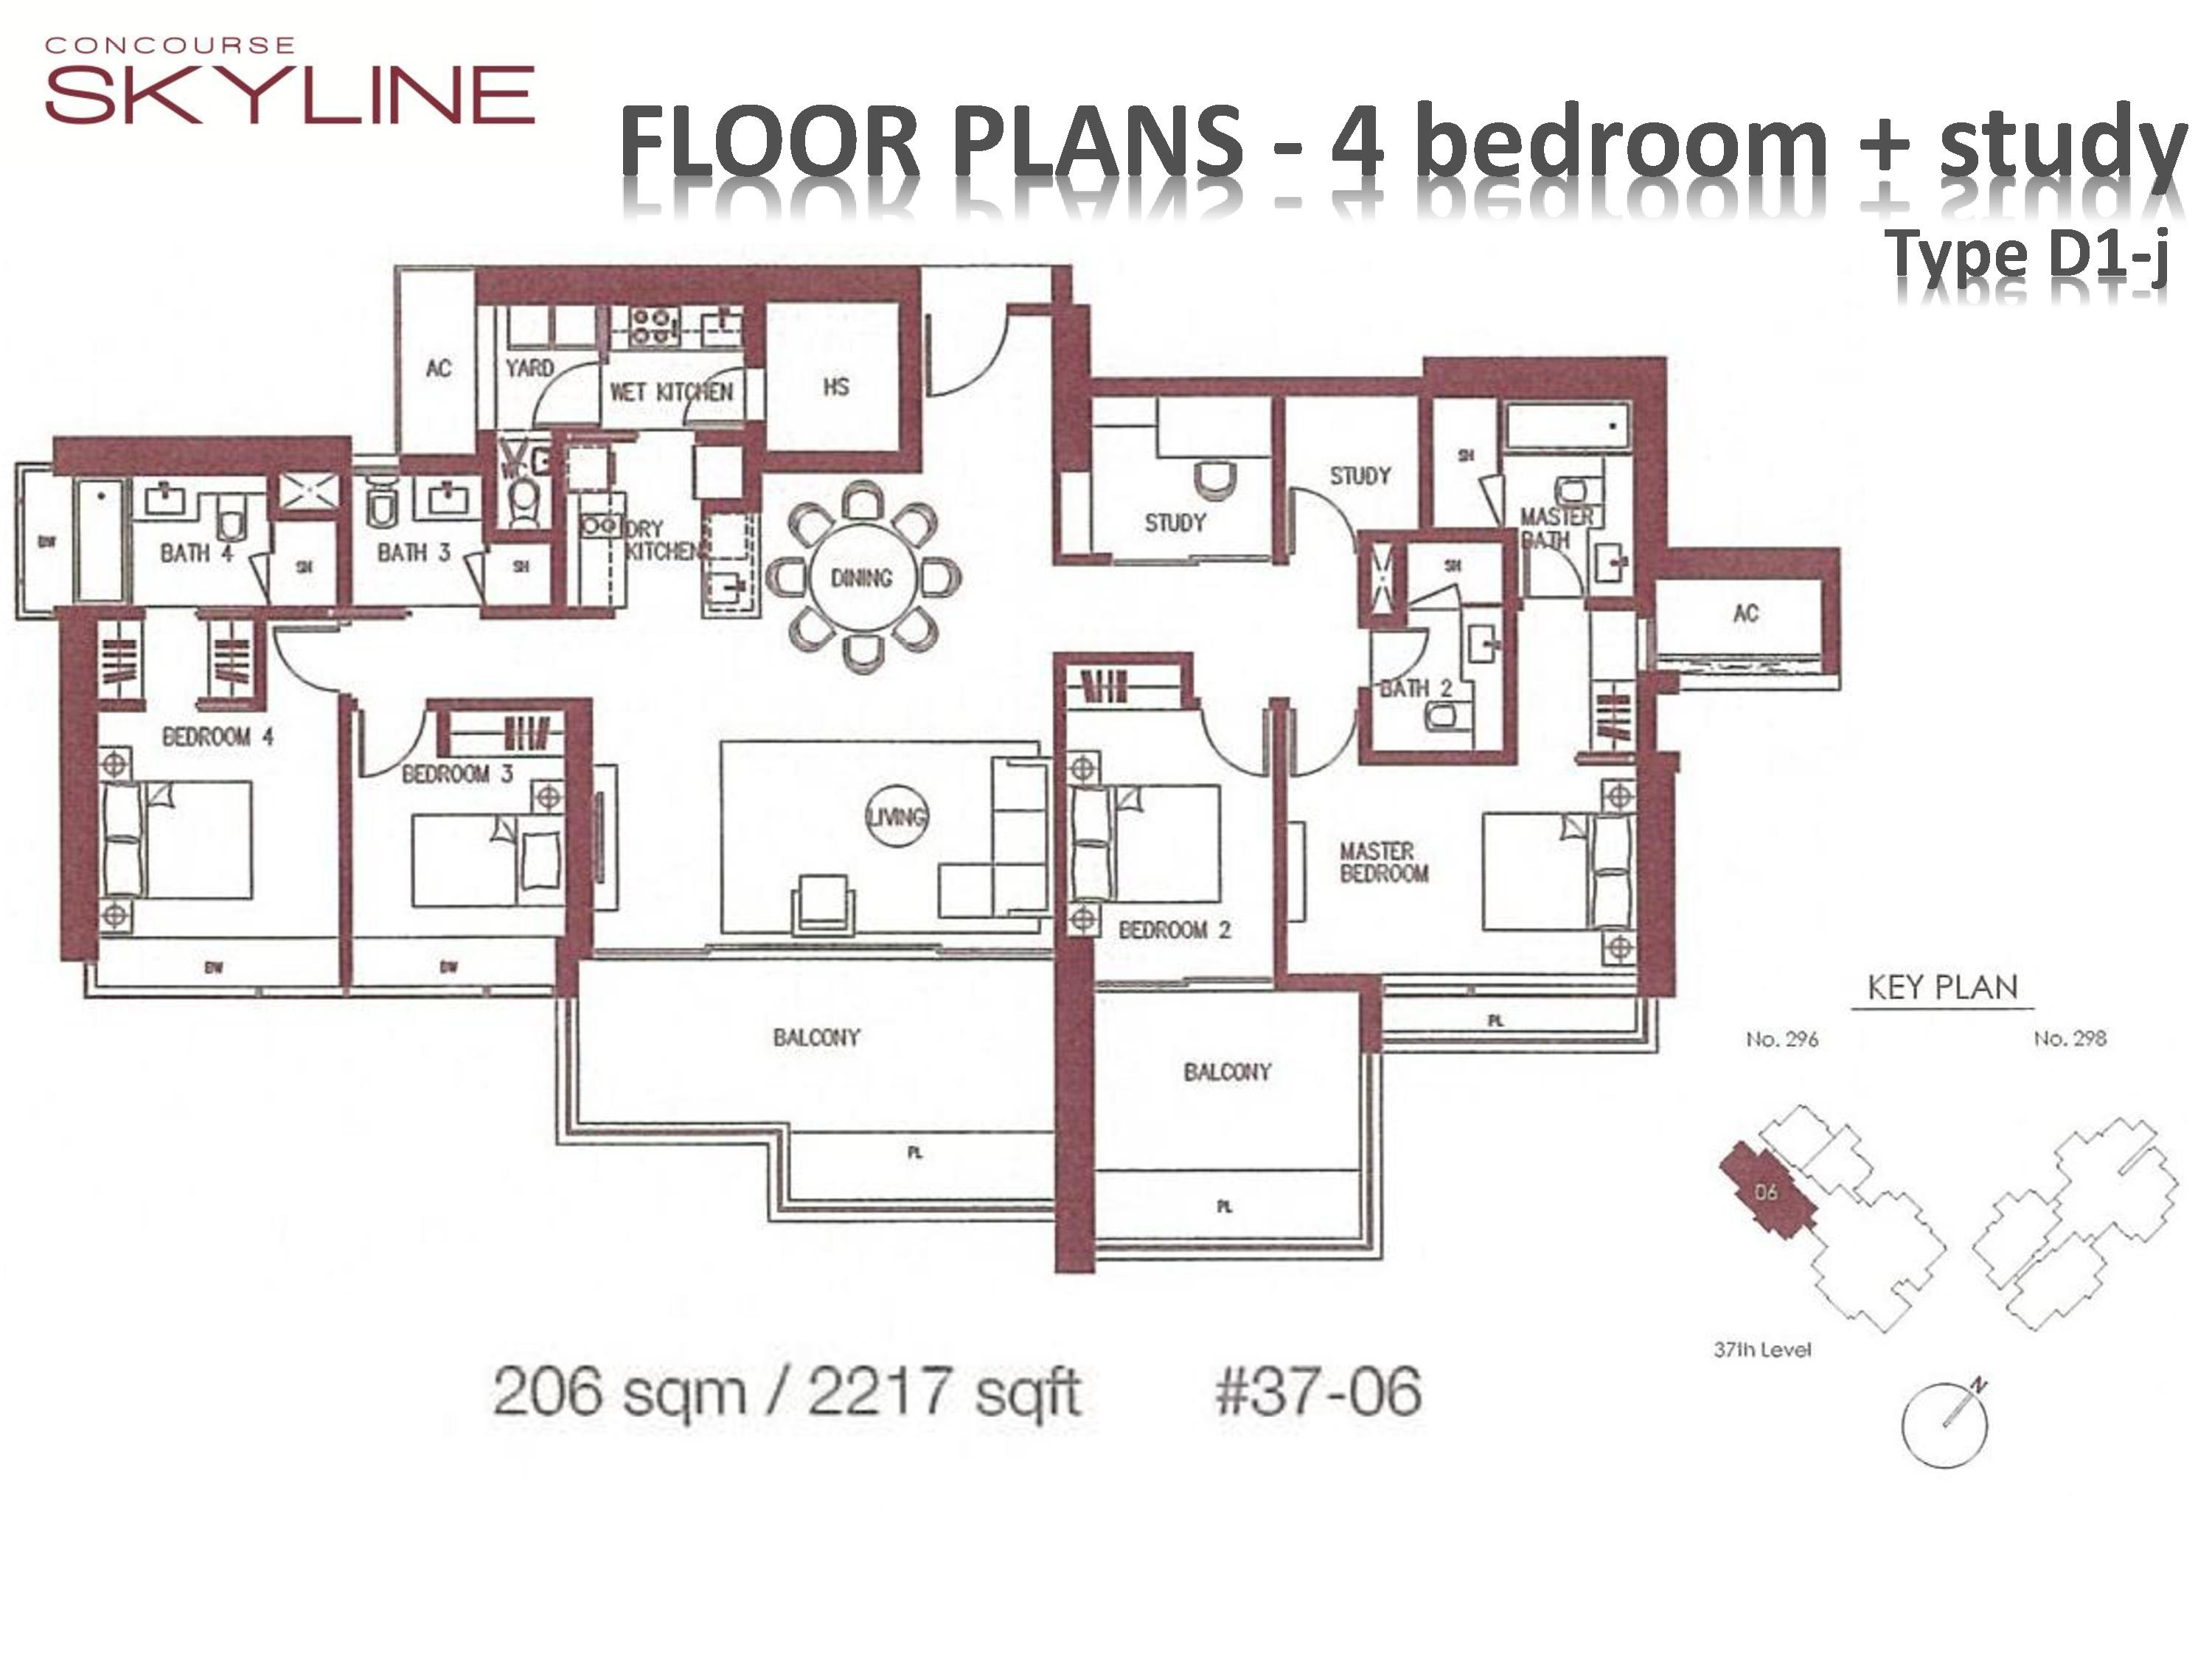 Concourse Skyline 4 Bedroom + Study Type D1-j Floor Plans